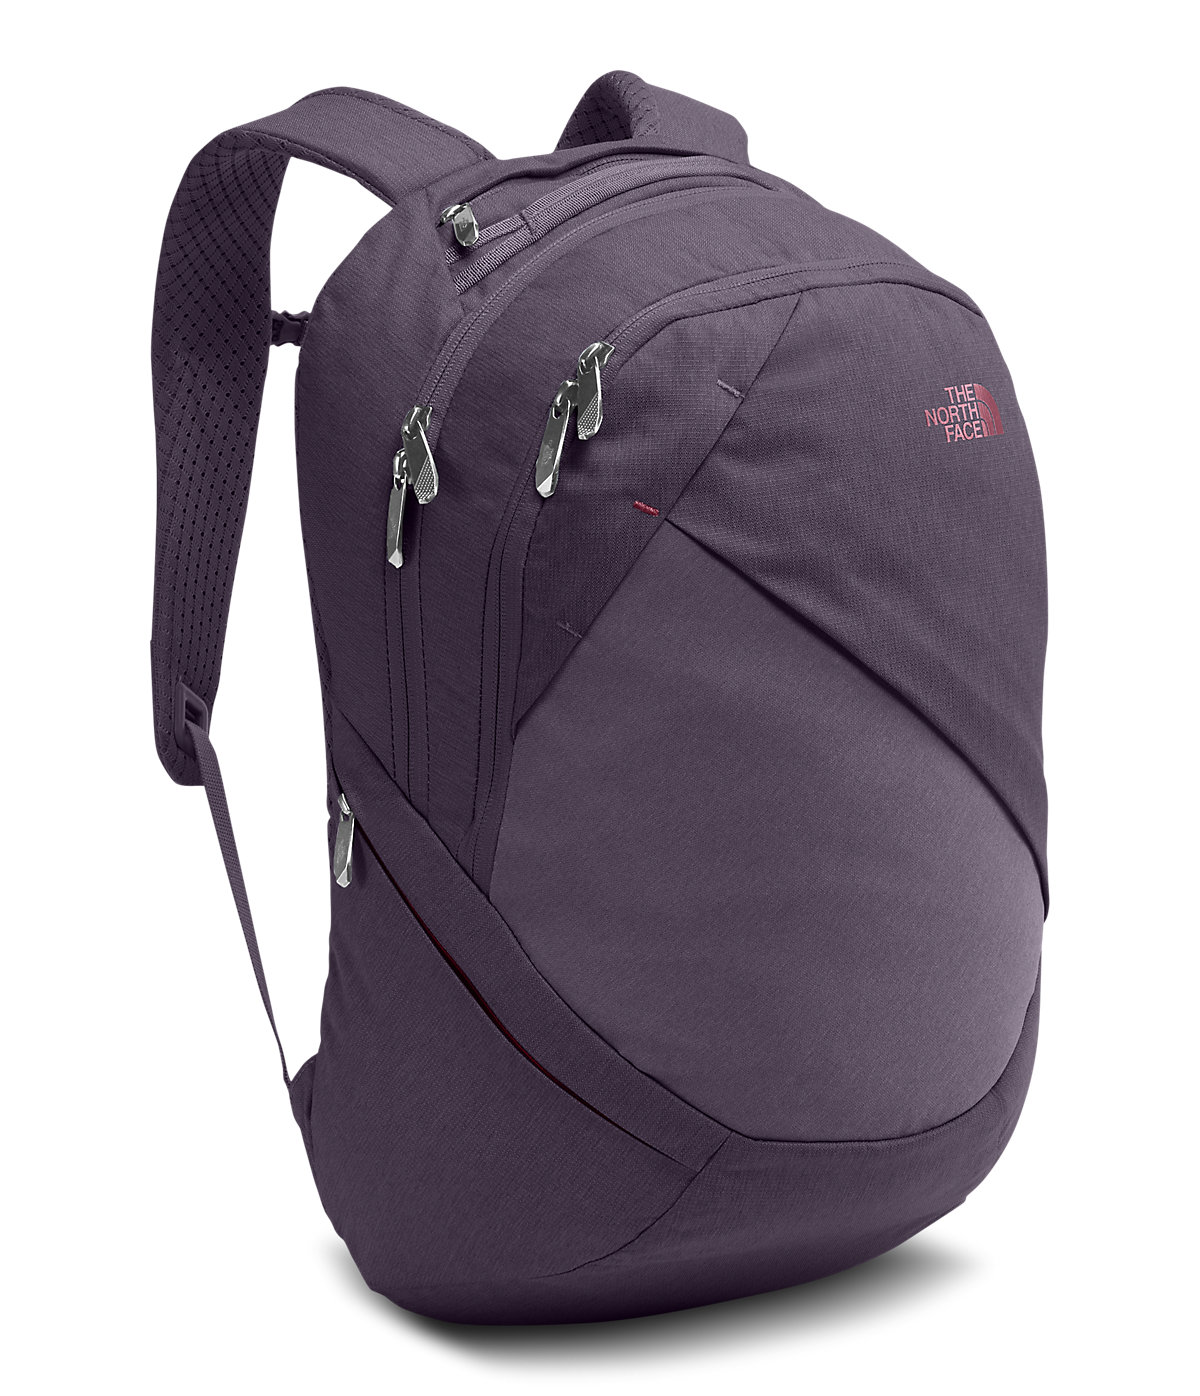 b1810eedc The North Face Women's Isabella Backpack